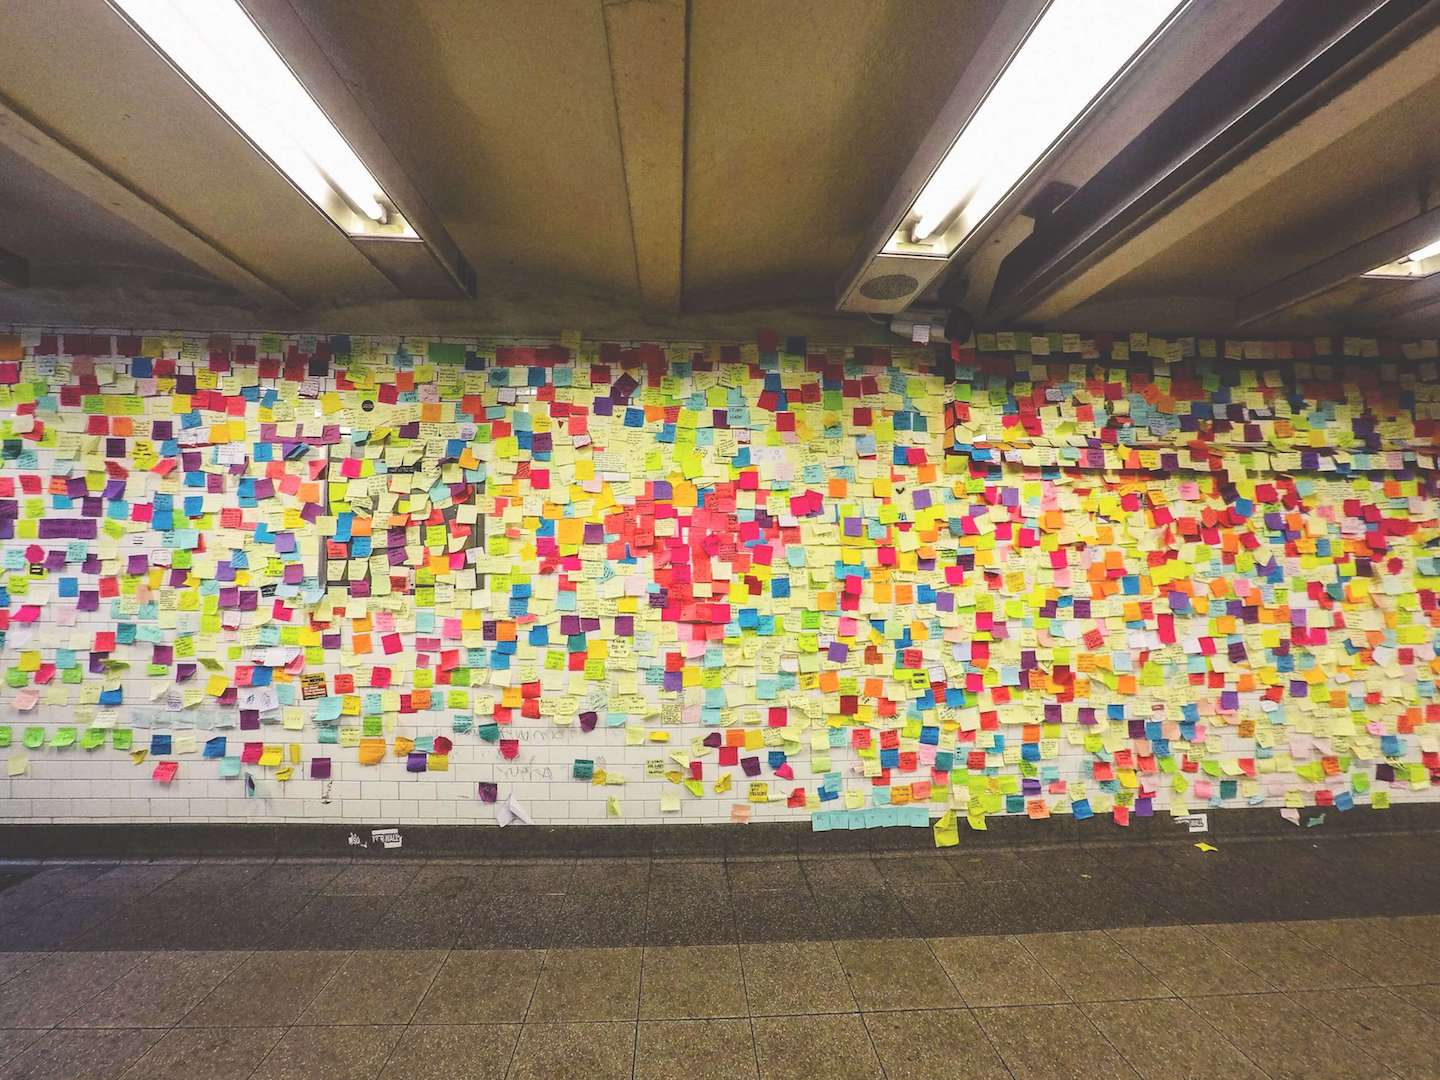 Post it wall in subway station for Union Square